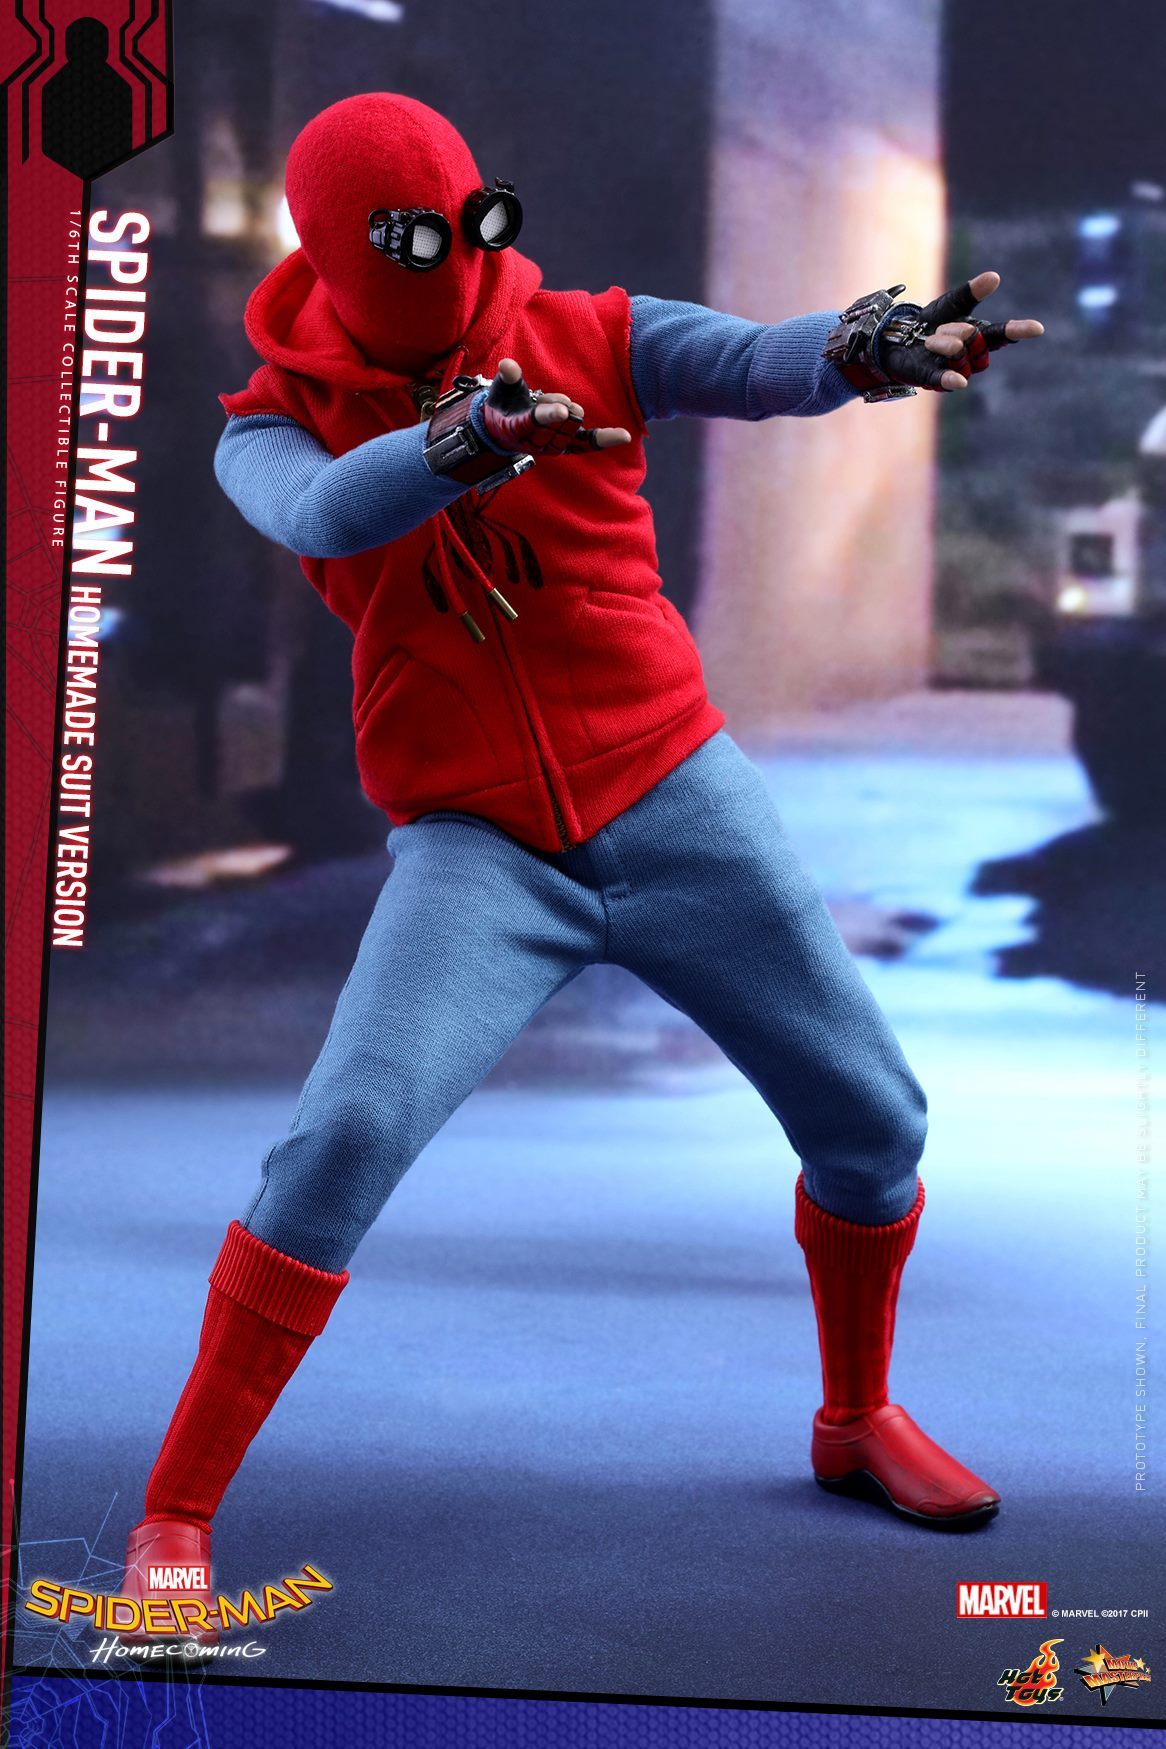 Spider-Man-Homecoming-Homemade-Suit-Version-by-Hot-Toys-6